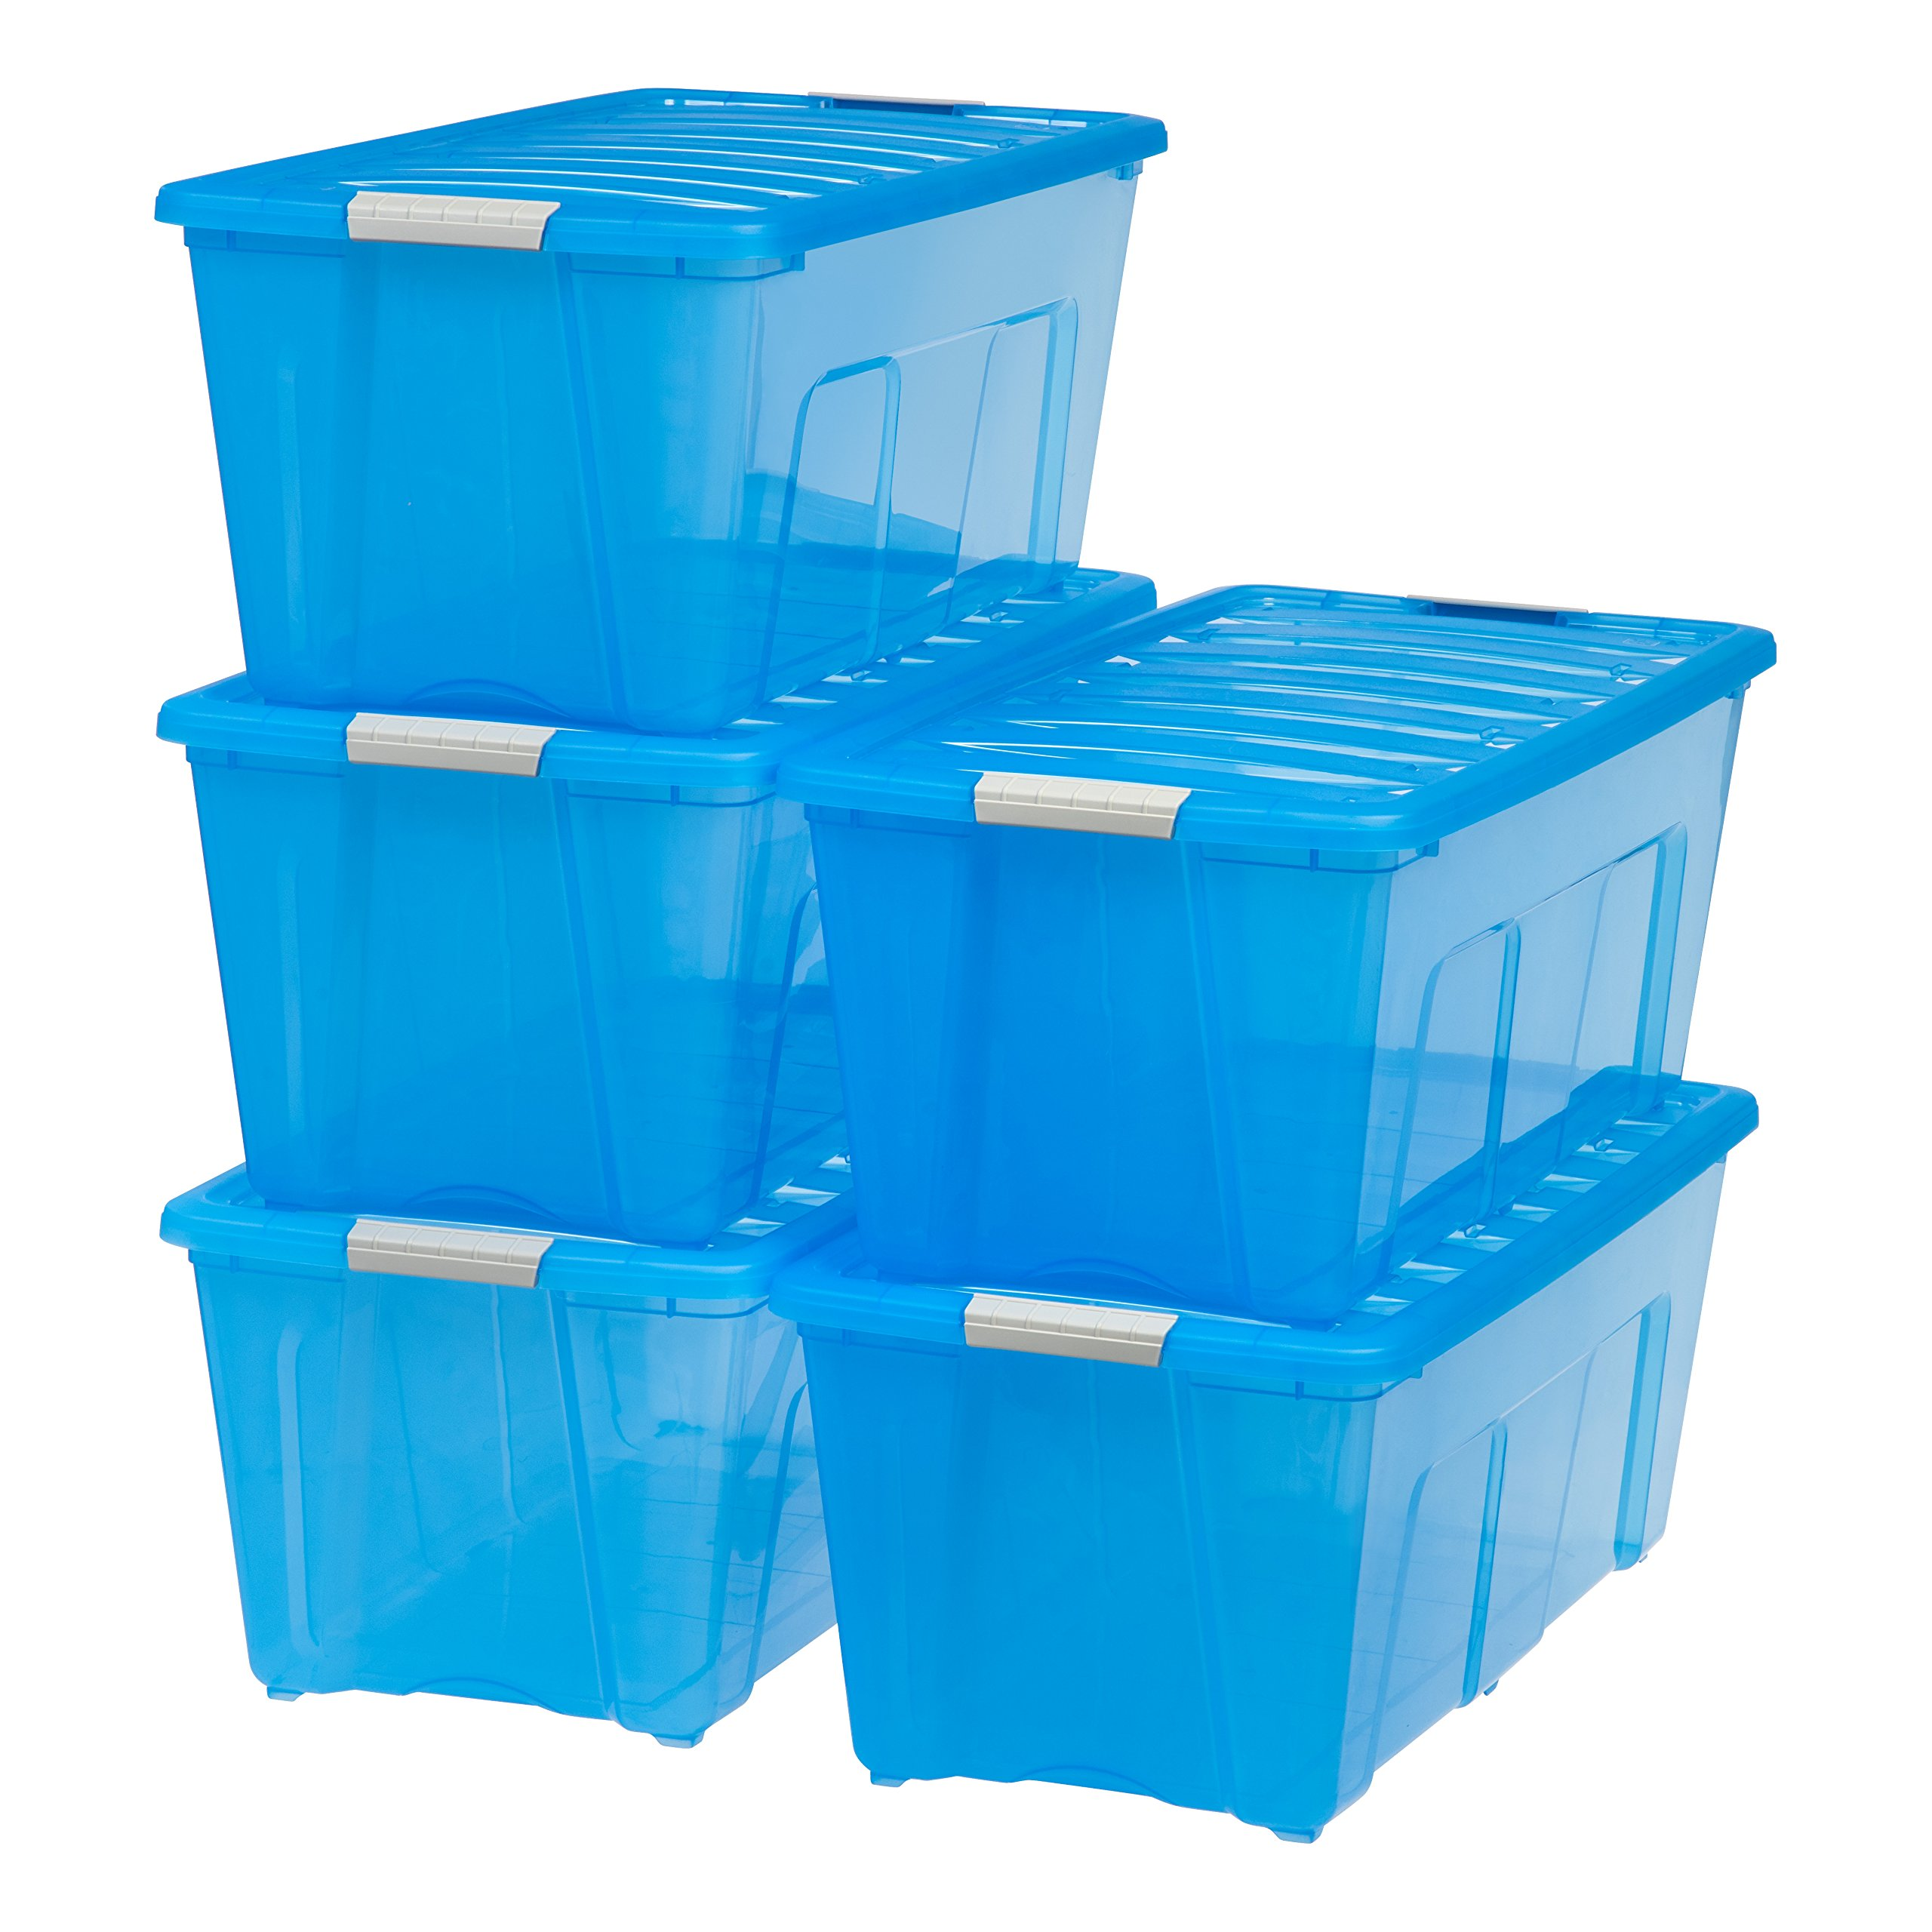 IRIS 83 Quart Stack & Pull Box, 5 Pack by IRIS USA, Inc.